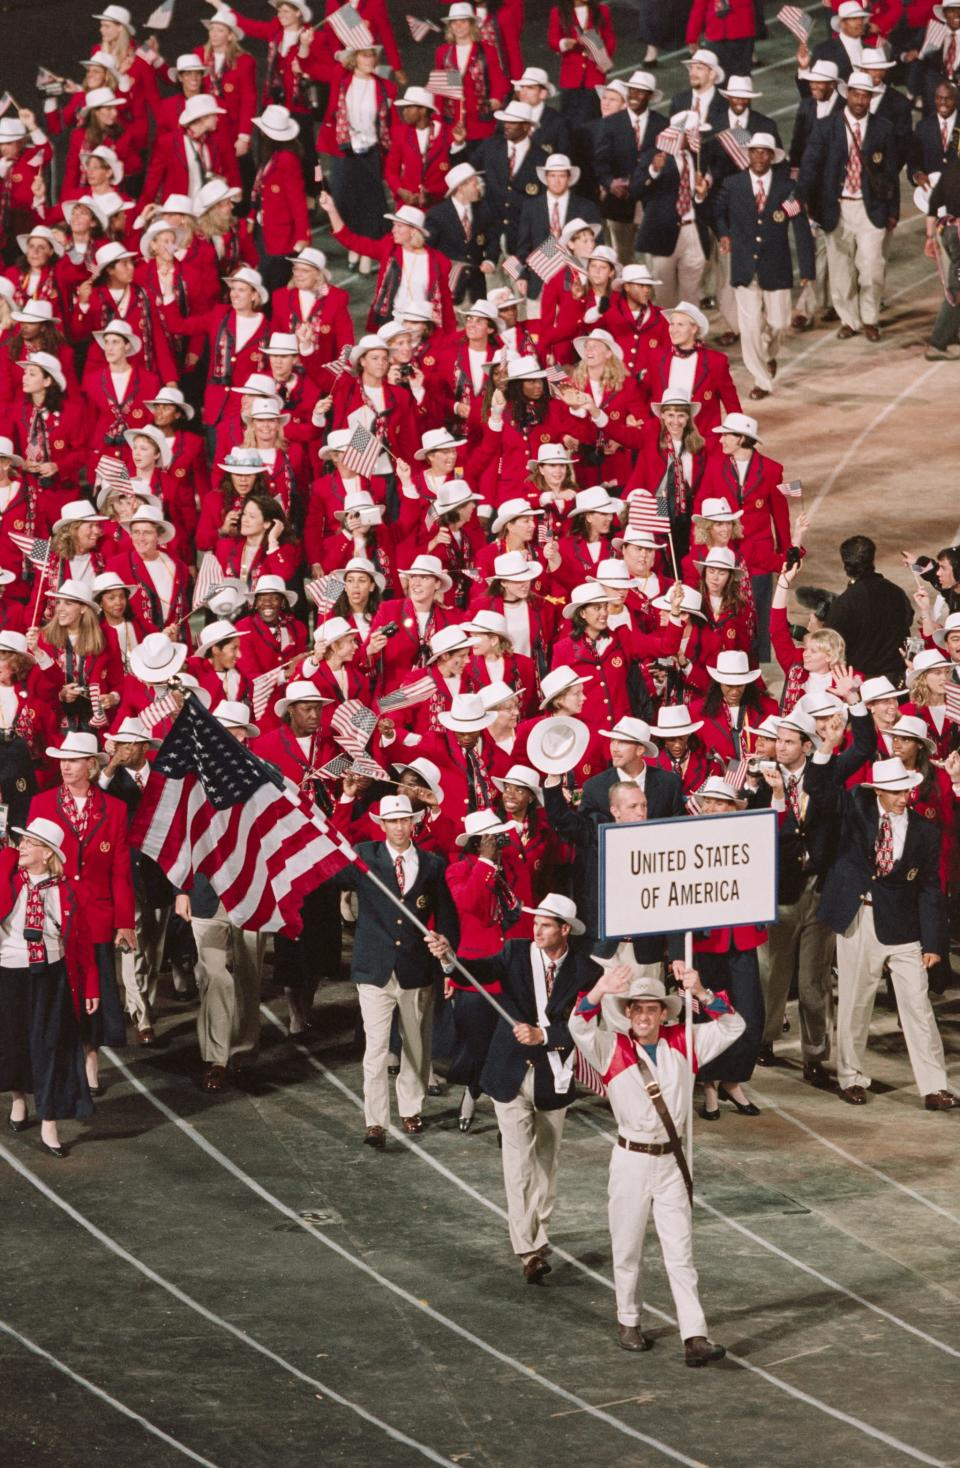 <p>The 2000 Sydney uniforms showed off plenty of Western inspiration, featuring cherry red blazers, tailored pants, and statement-making cowboy hats. </p>